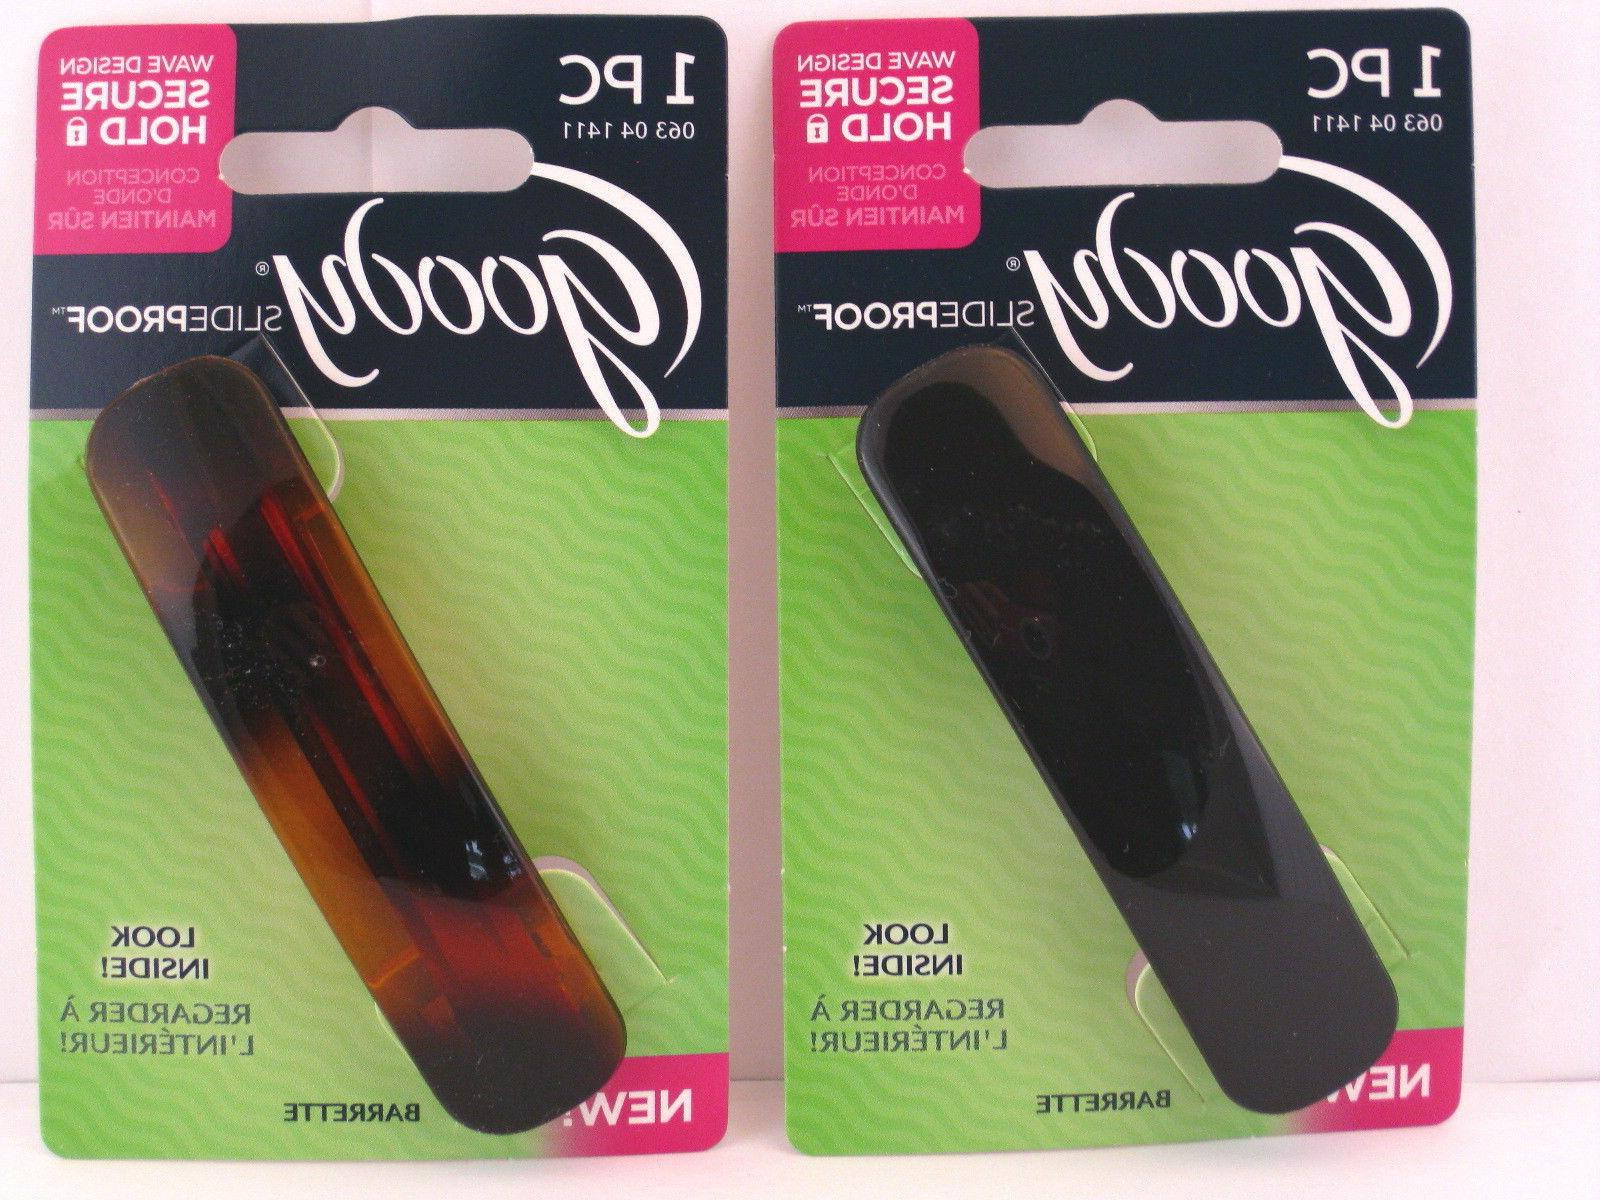 GOODY SLIDEPROOF AUTOCLASP HAIR BARRETTES -1 PC.